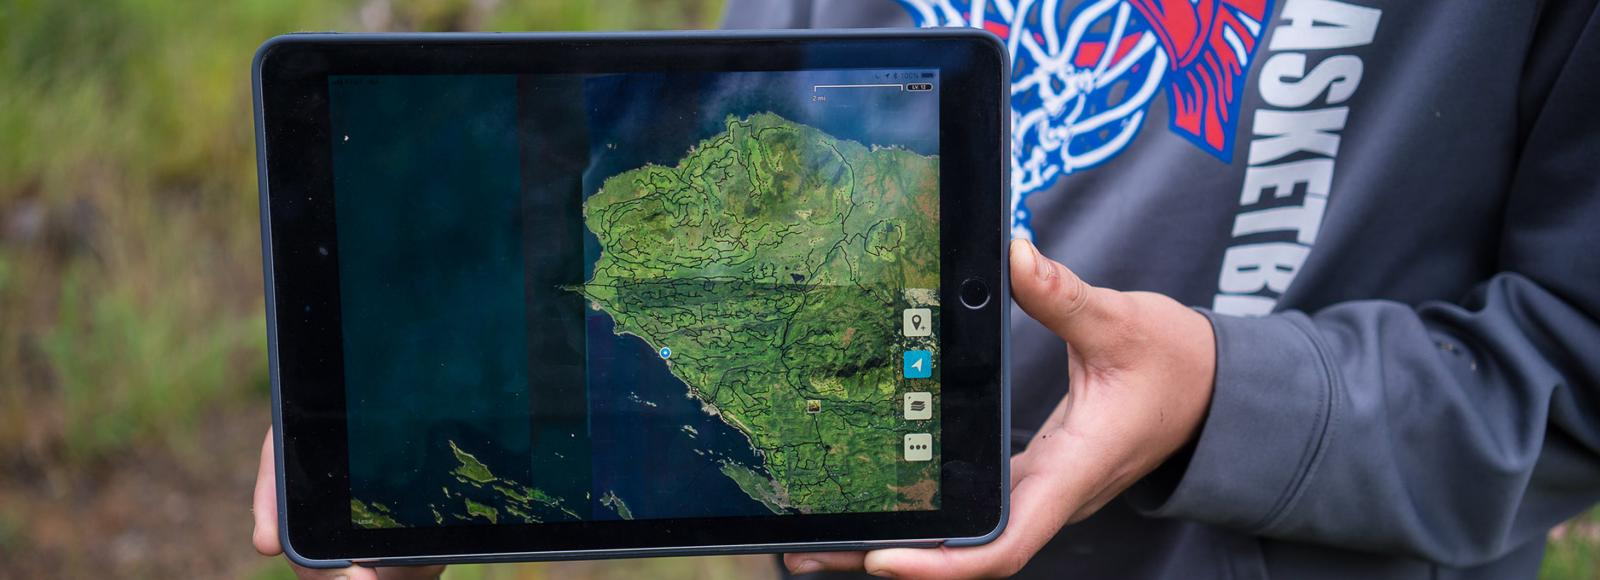 A tablet with a map on the screen.